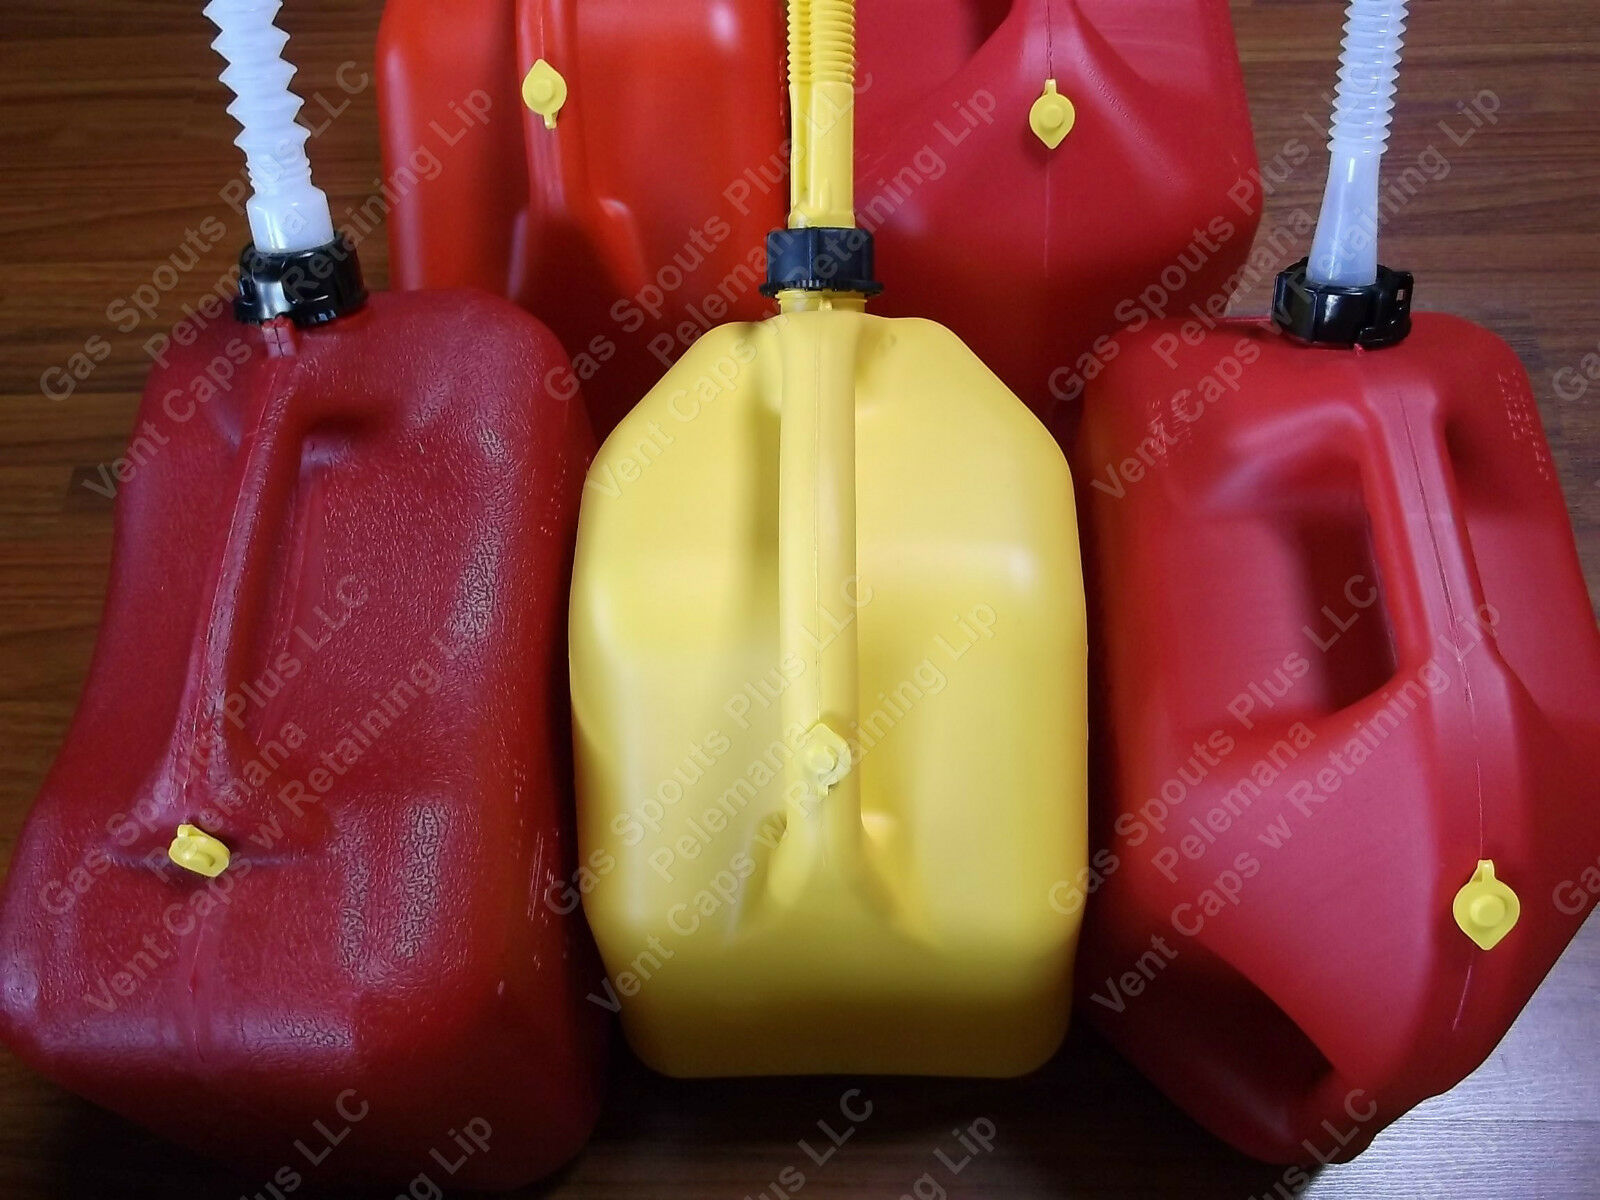 10 New Yellow VENT CAPS Gas Fuel Can Midwest Blitz Scepter Ameri-can HEAVY DUTY